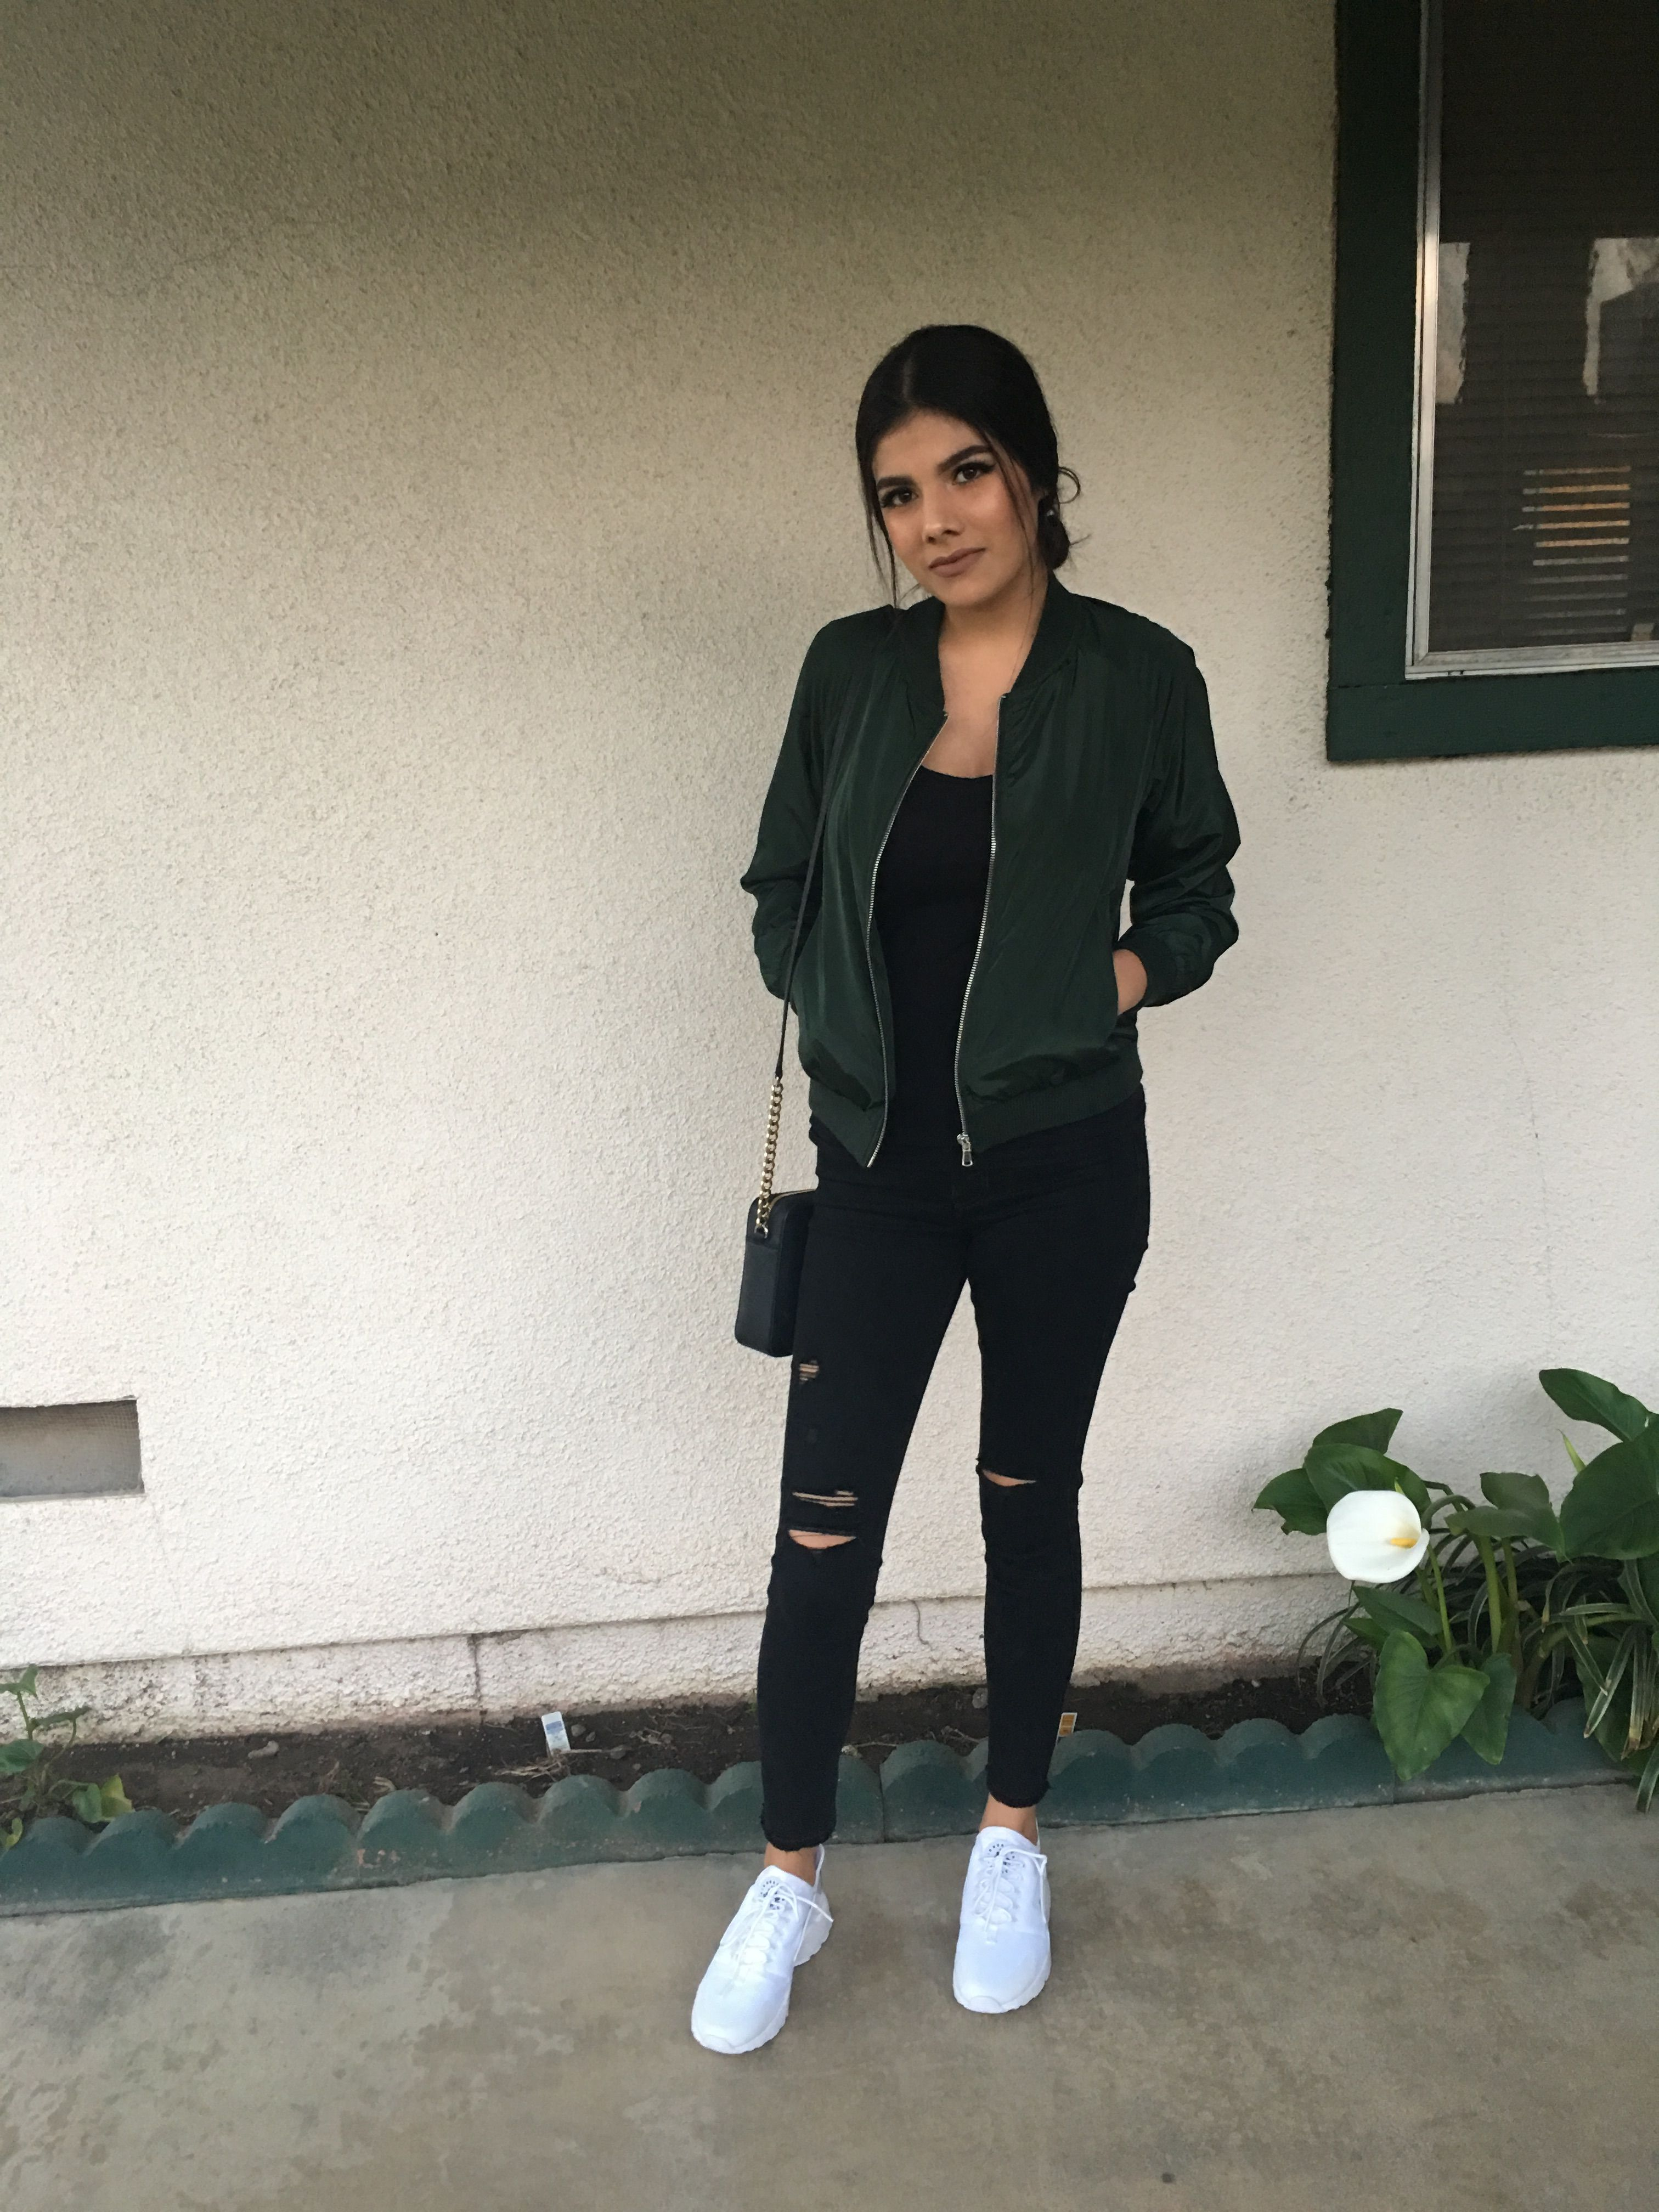 2ad9f5eebd052 Green bomber jacket with black ripped jeans white huaraches